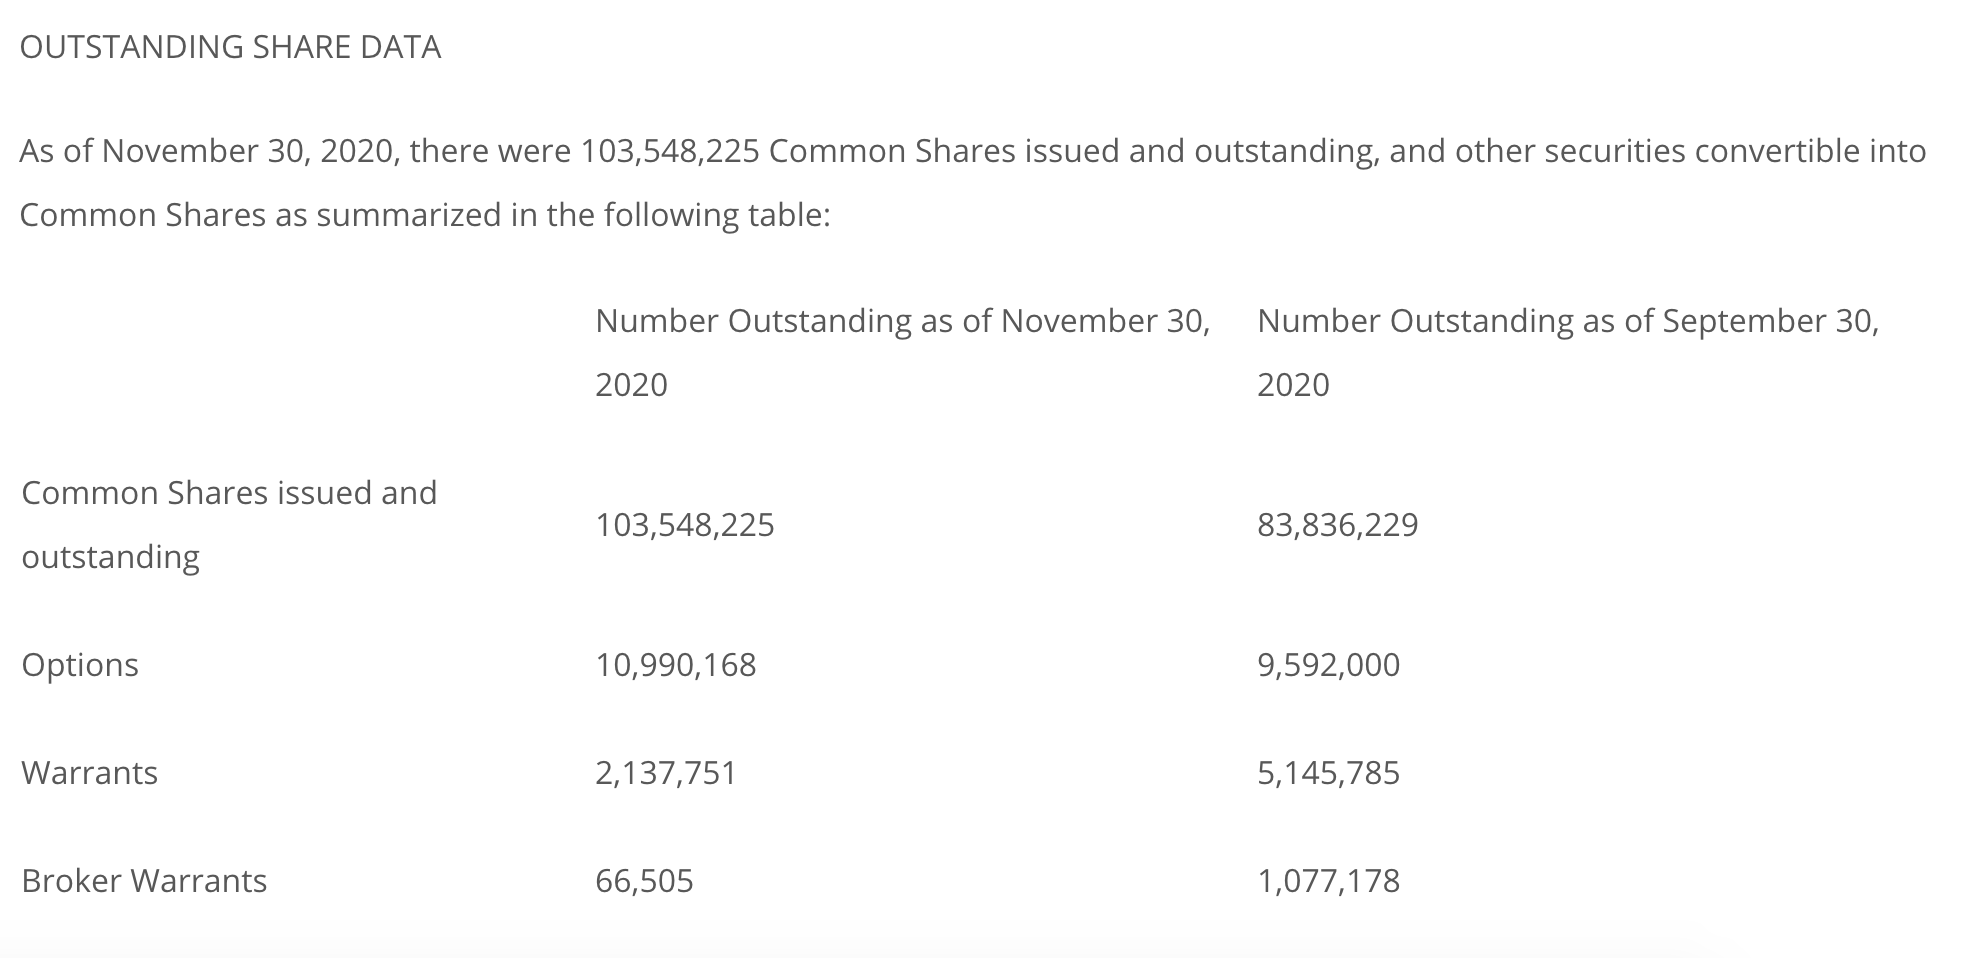 Table of Exro Technologies' outstanding share data, as of November 30, 2020.